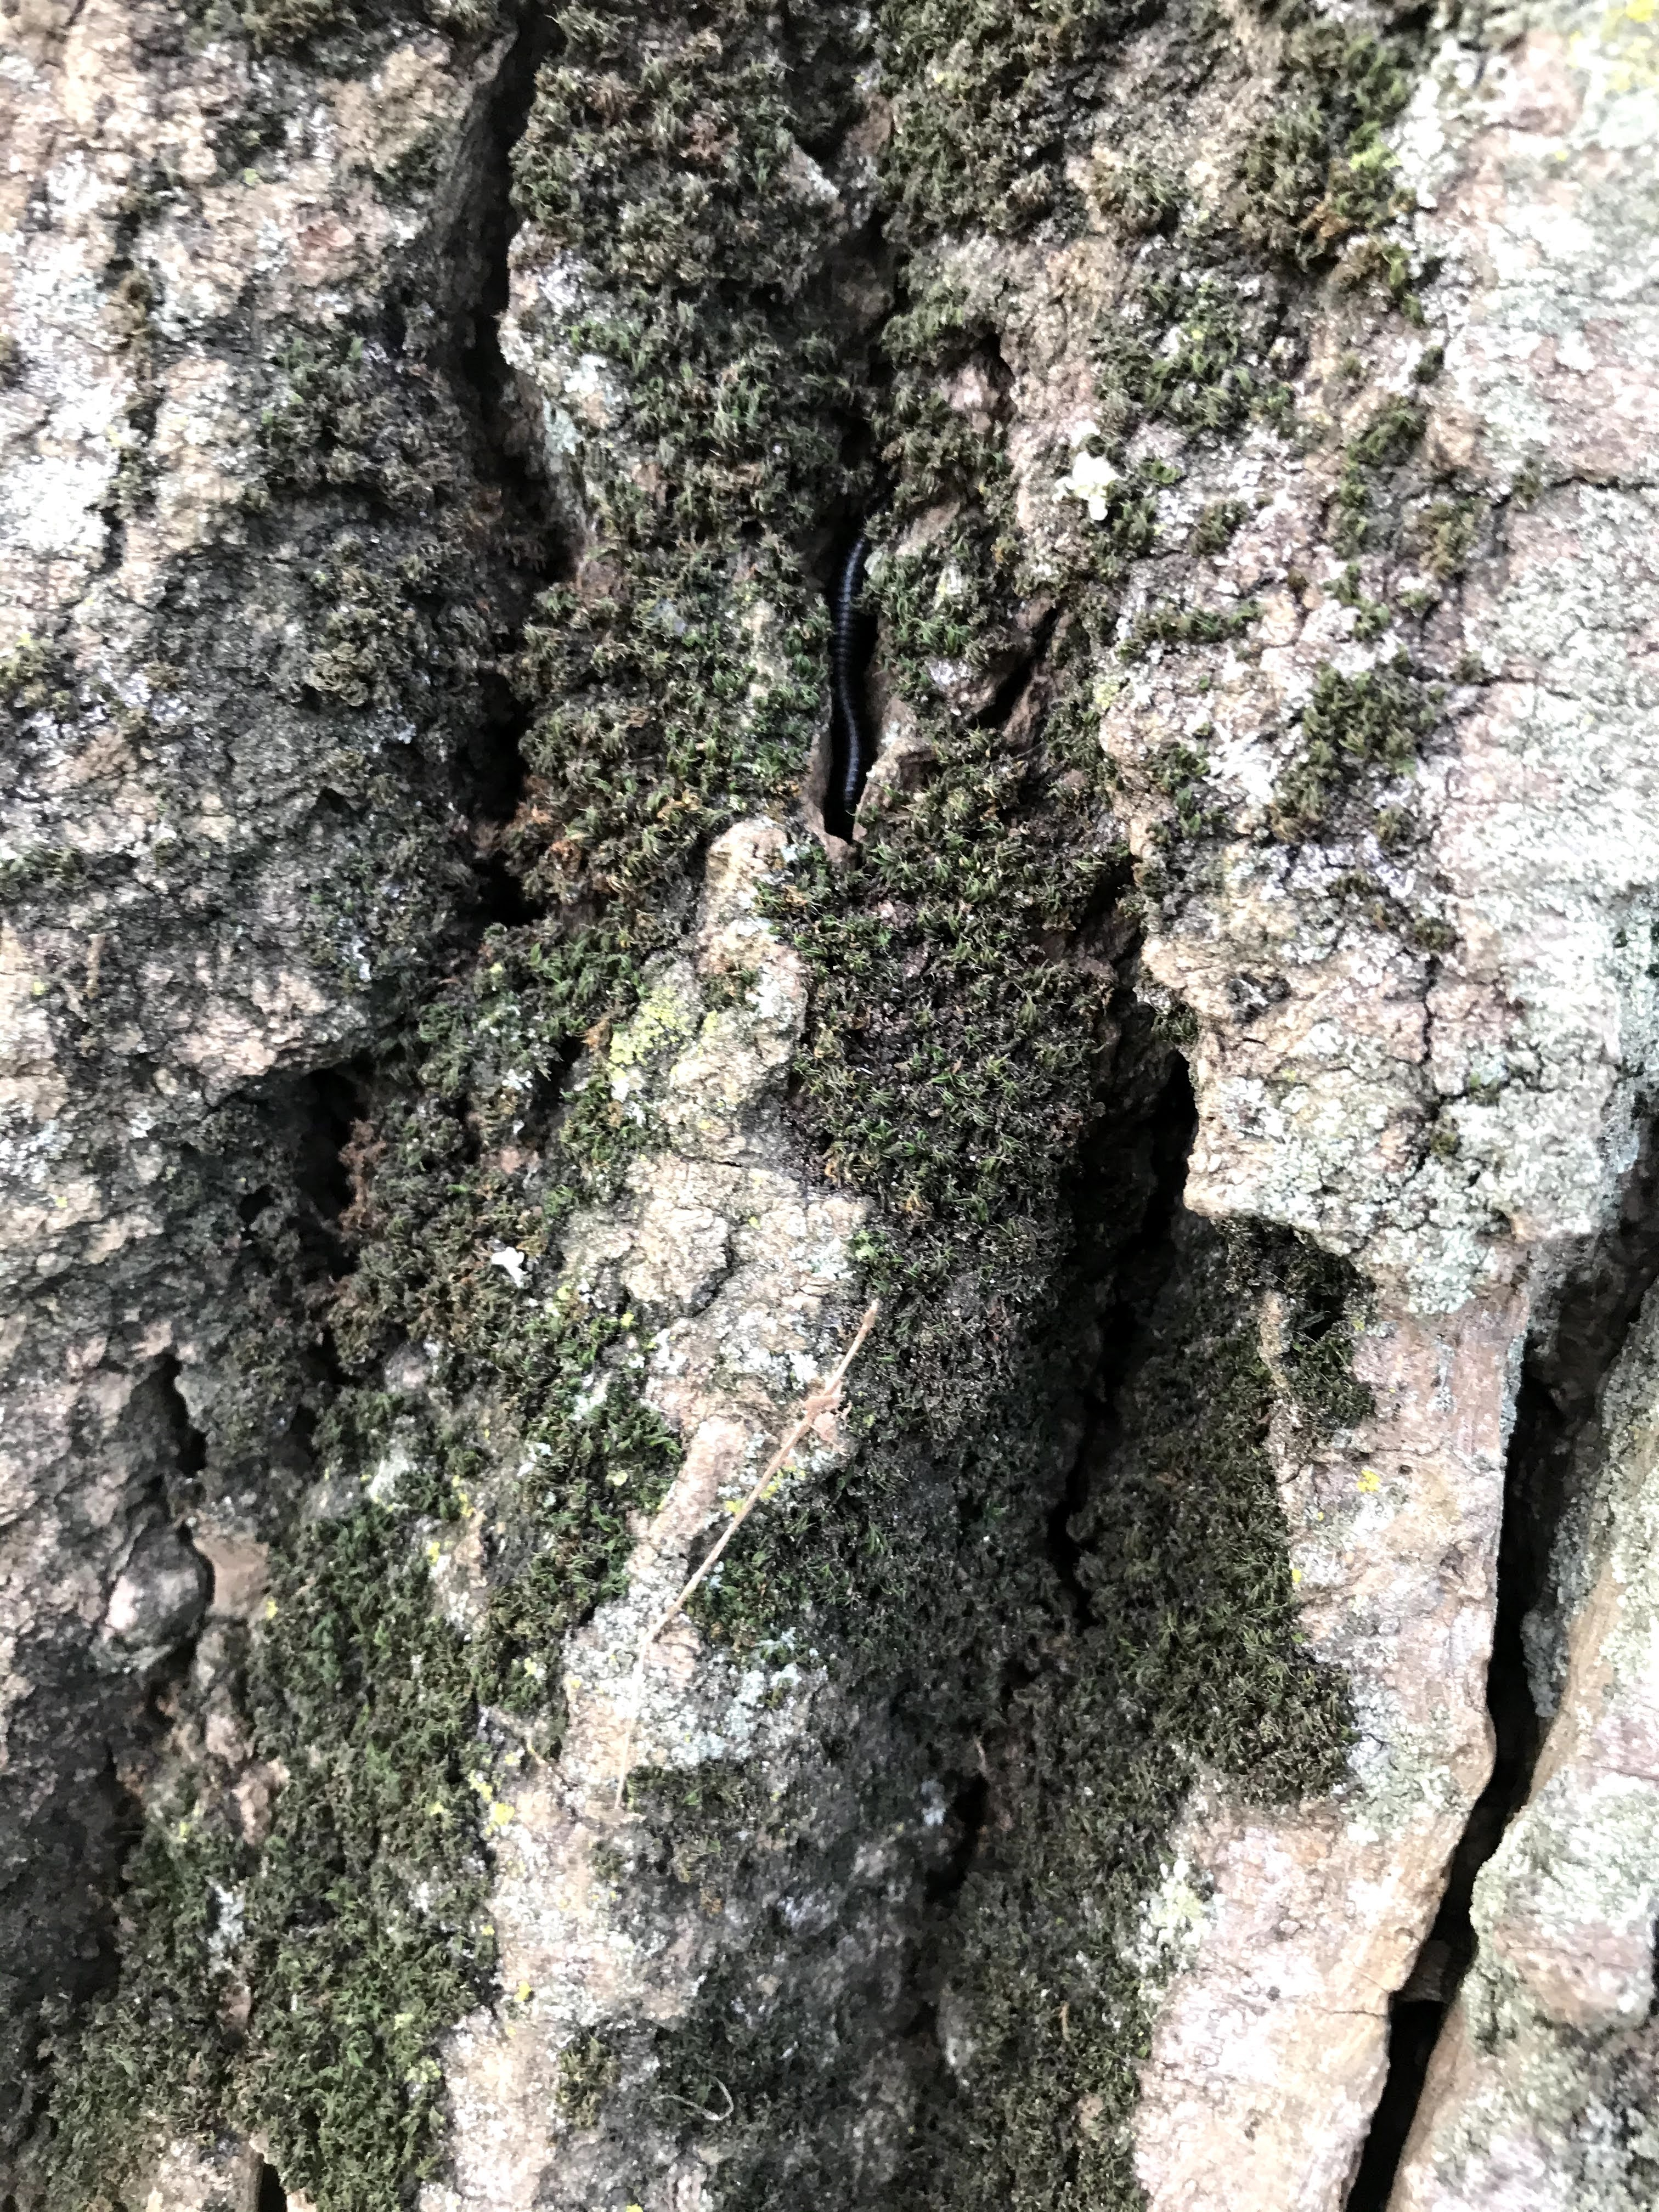 Close up of bark on large and old trees